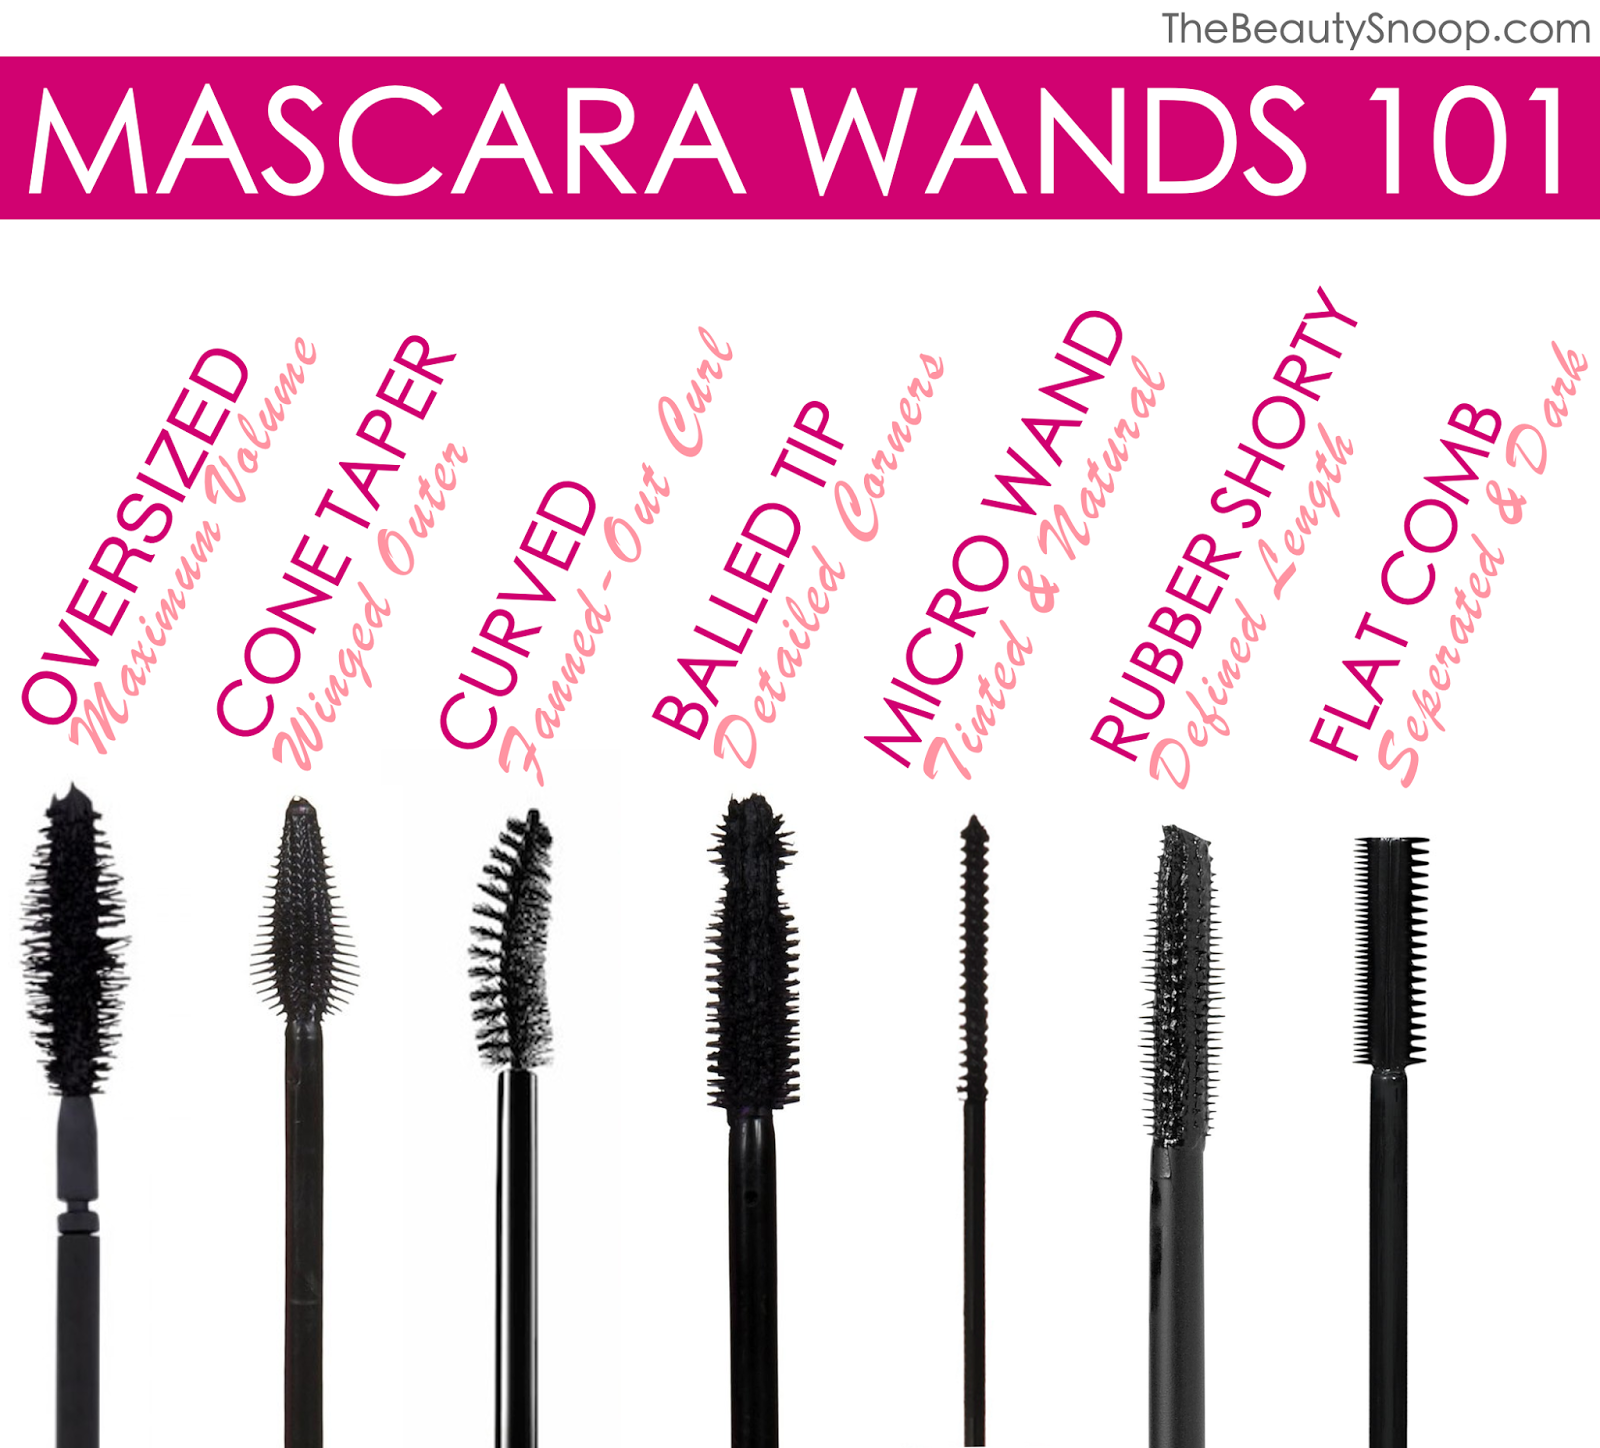 Mascara Wand Shapes, Mascara Wands 101, What are the different shaped mascara wands for?